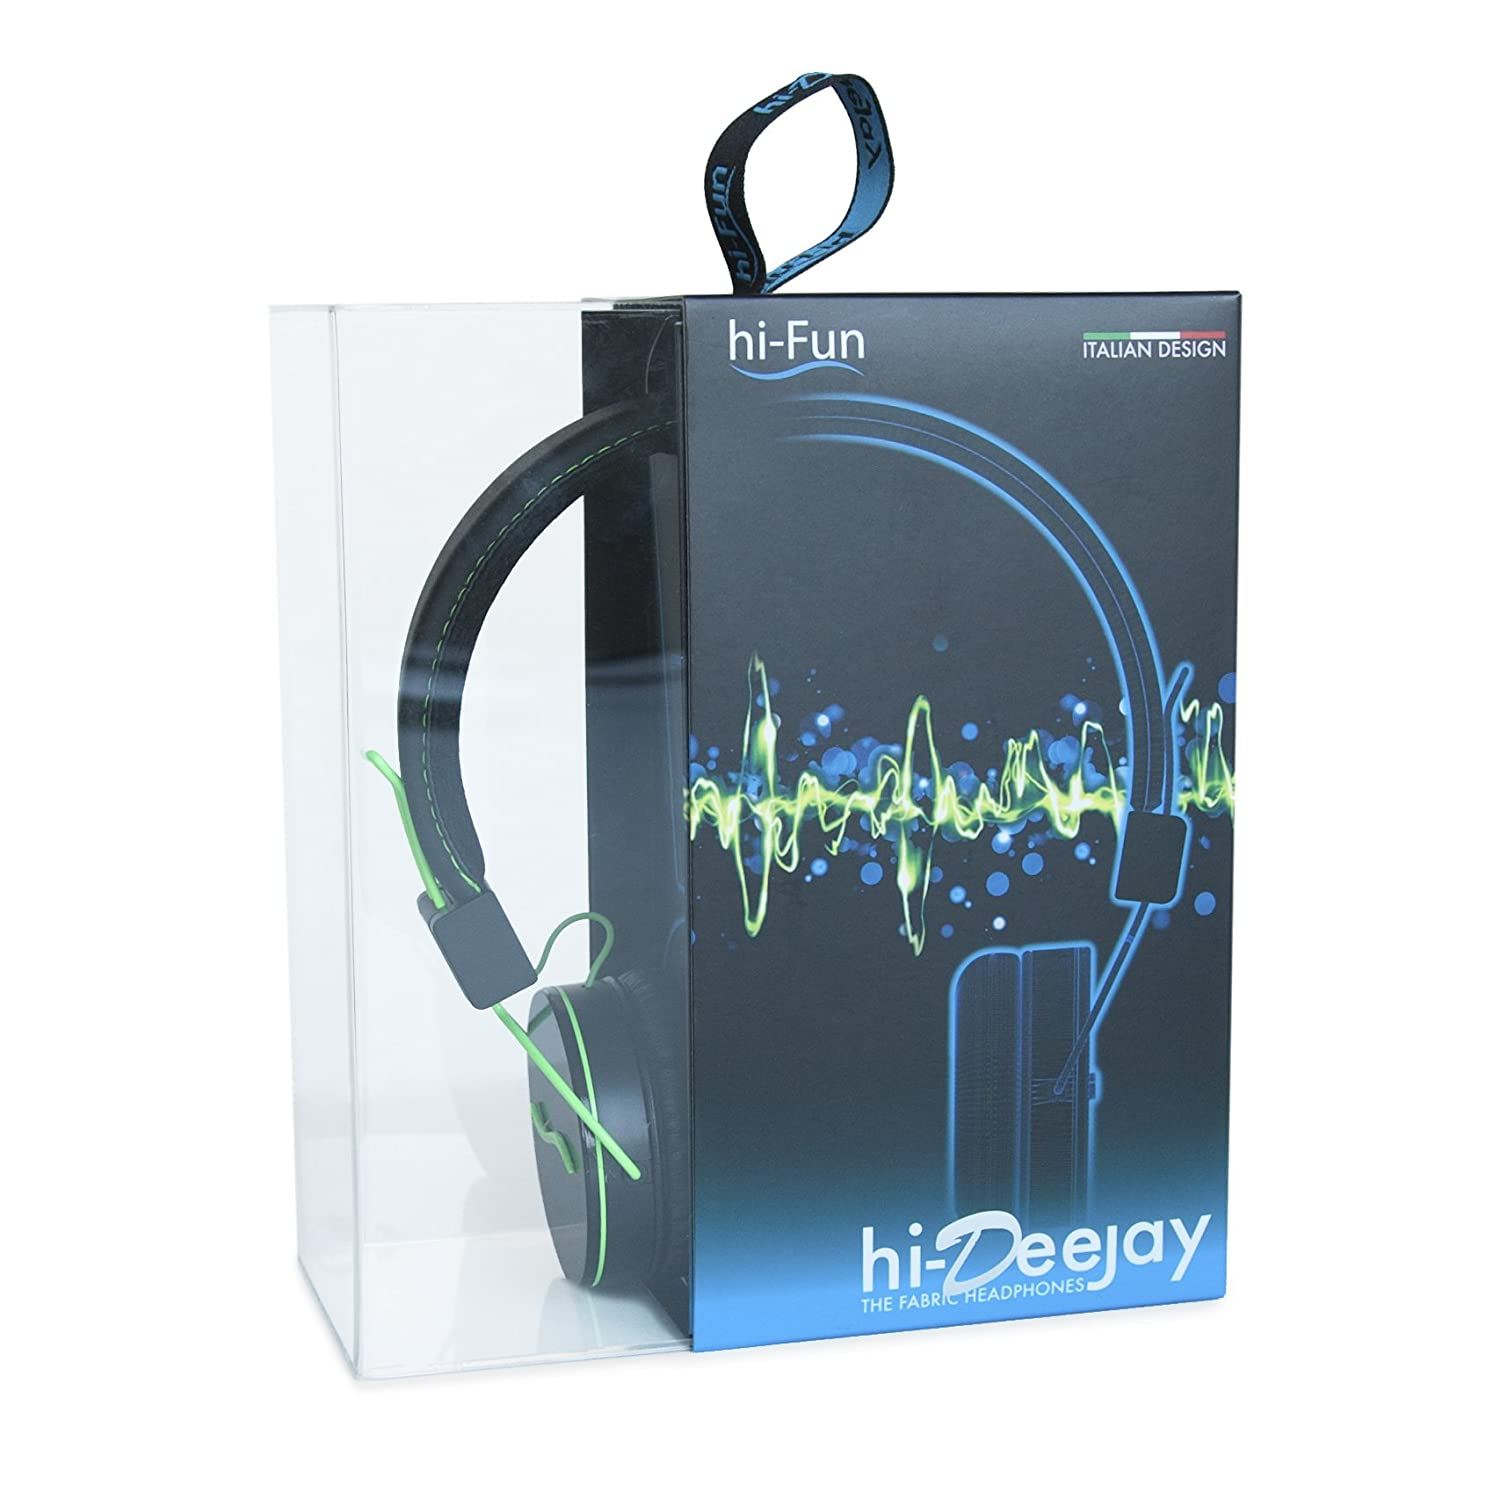 The first metal-covered headphones HI FUN HFHIDEEJAY-BGR 163 Professional headphones perfect for listening to your favorite music with an outstanding sound and talk on the phone with all your friends